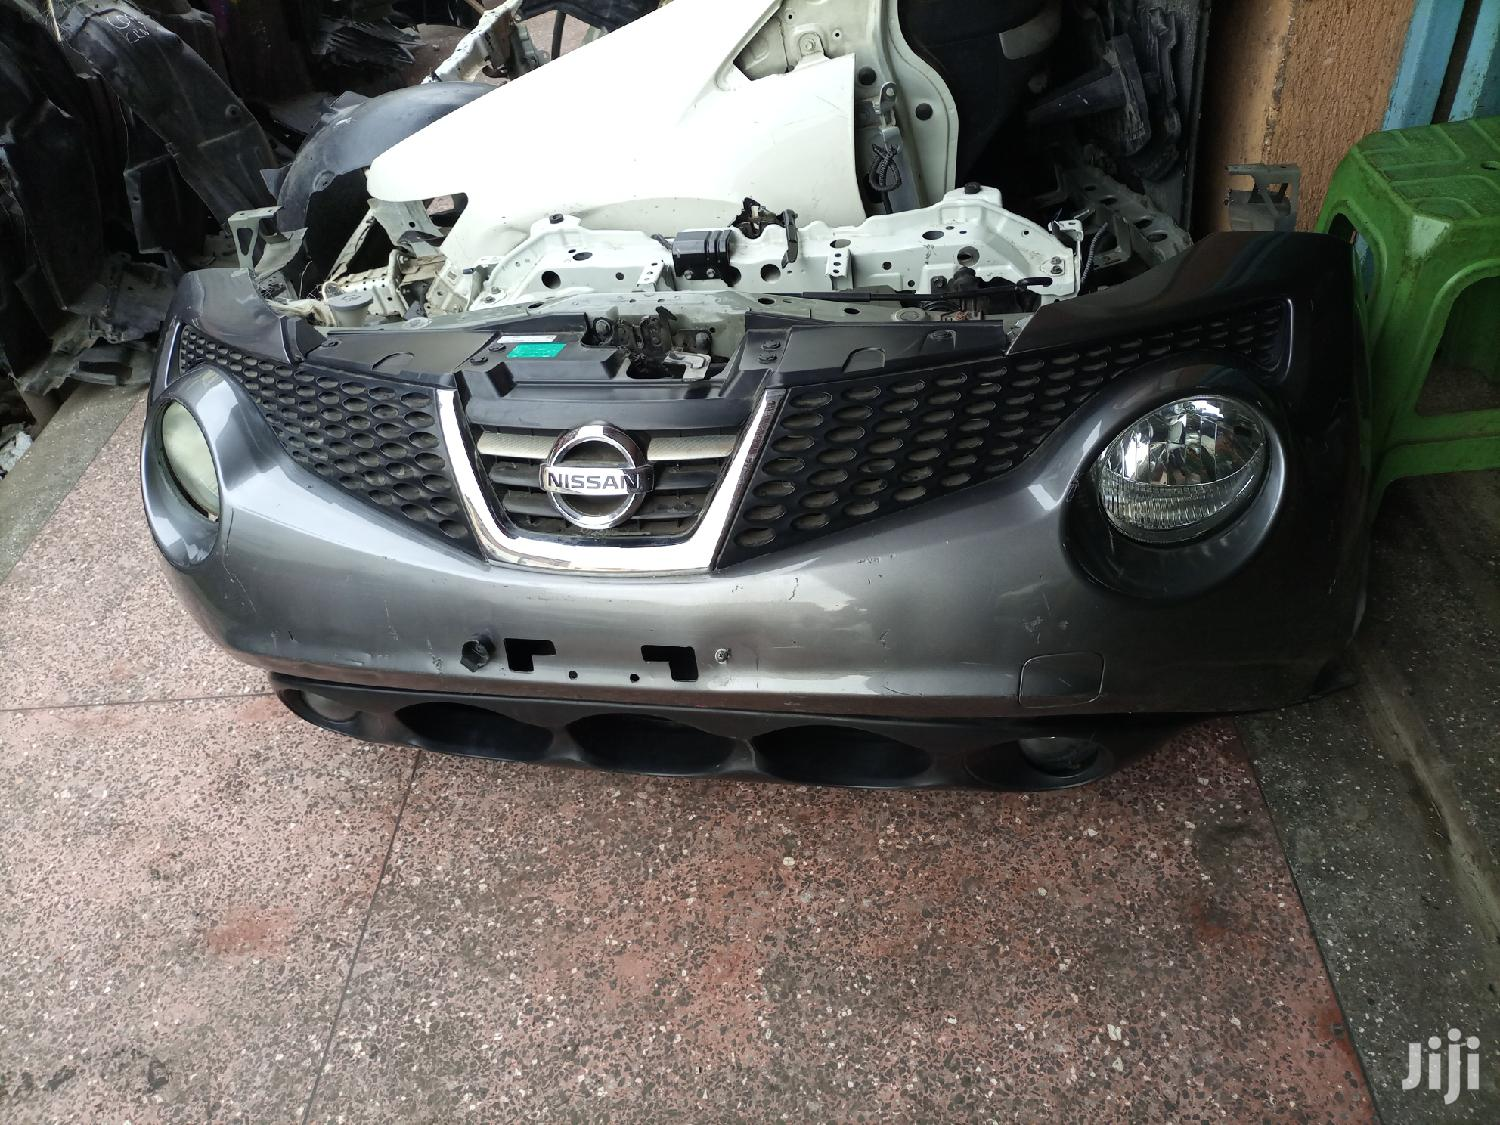 Nissan Juke Nosecut Available | Vehicle Parts & Accessories for sale in Westlands, Nairobi, Kenya